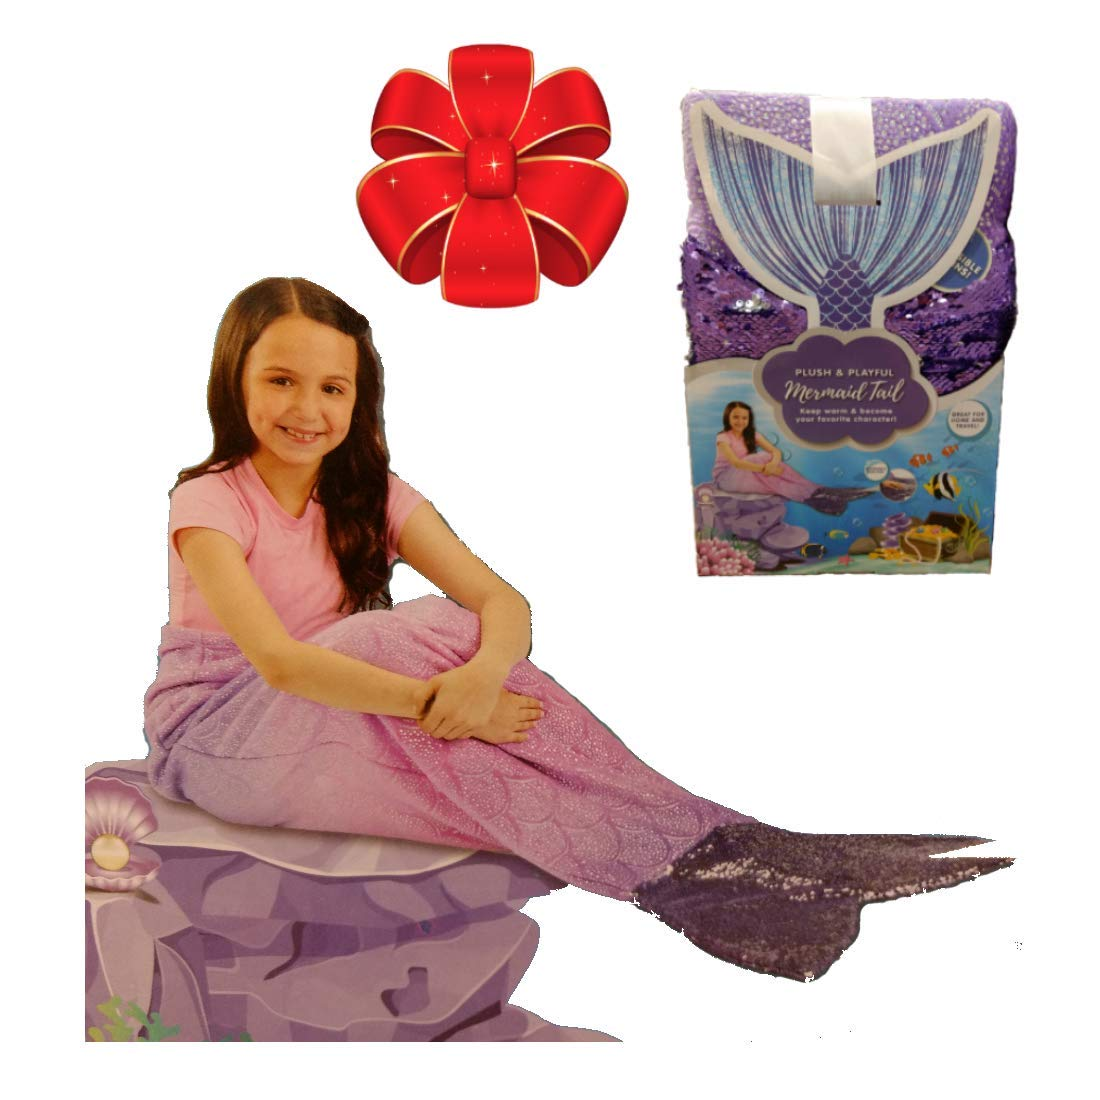 Plush and Playful Designs for Girls Plush and Playful Mermaid Tail Throw Blanket for Girls Colorful Sequins (Purple) Mermaid Throw